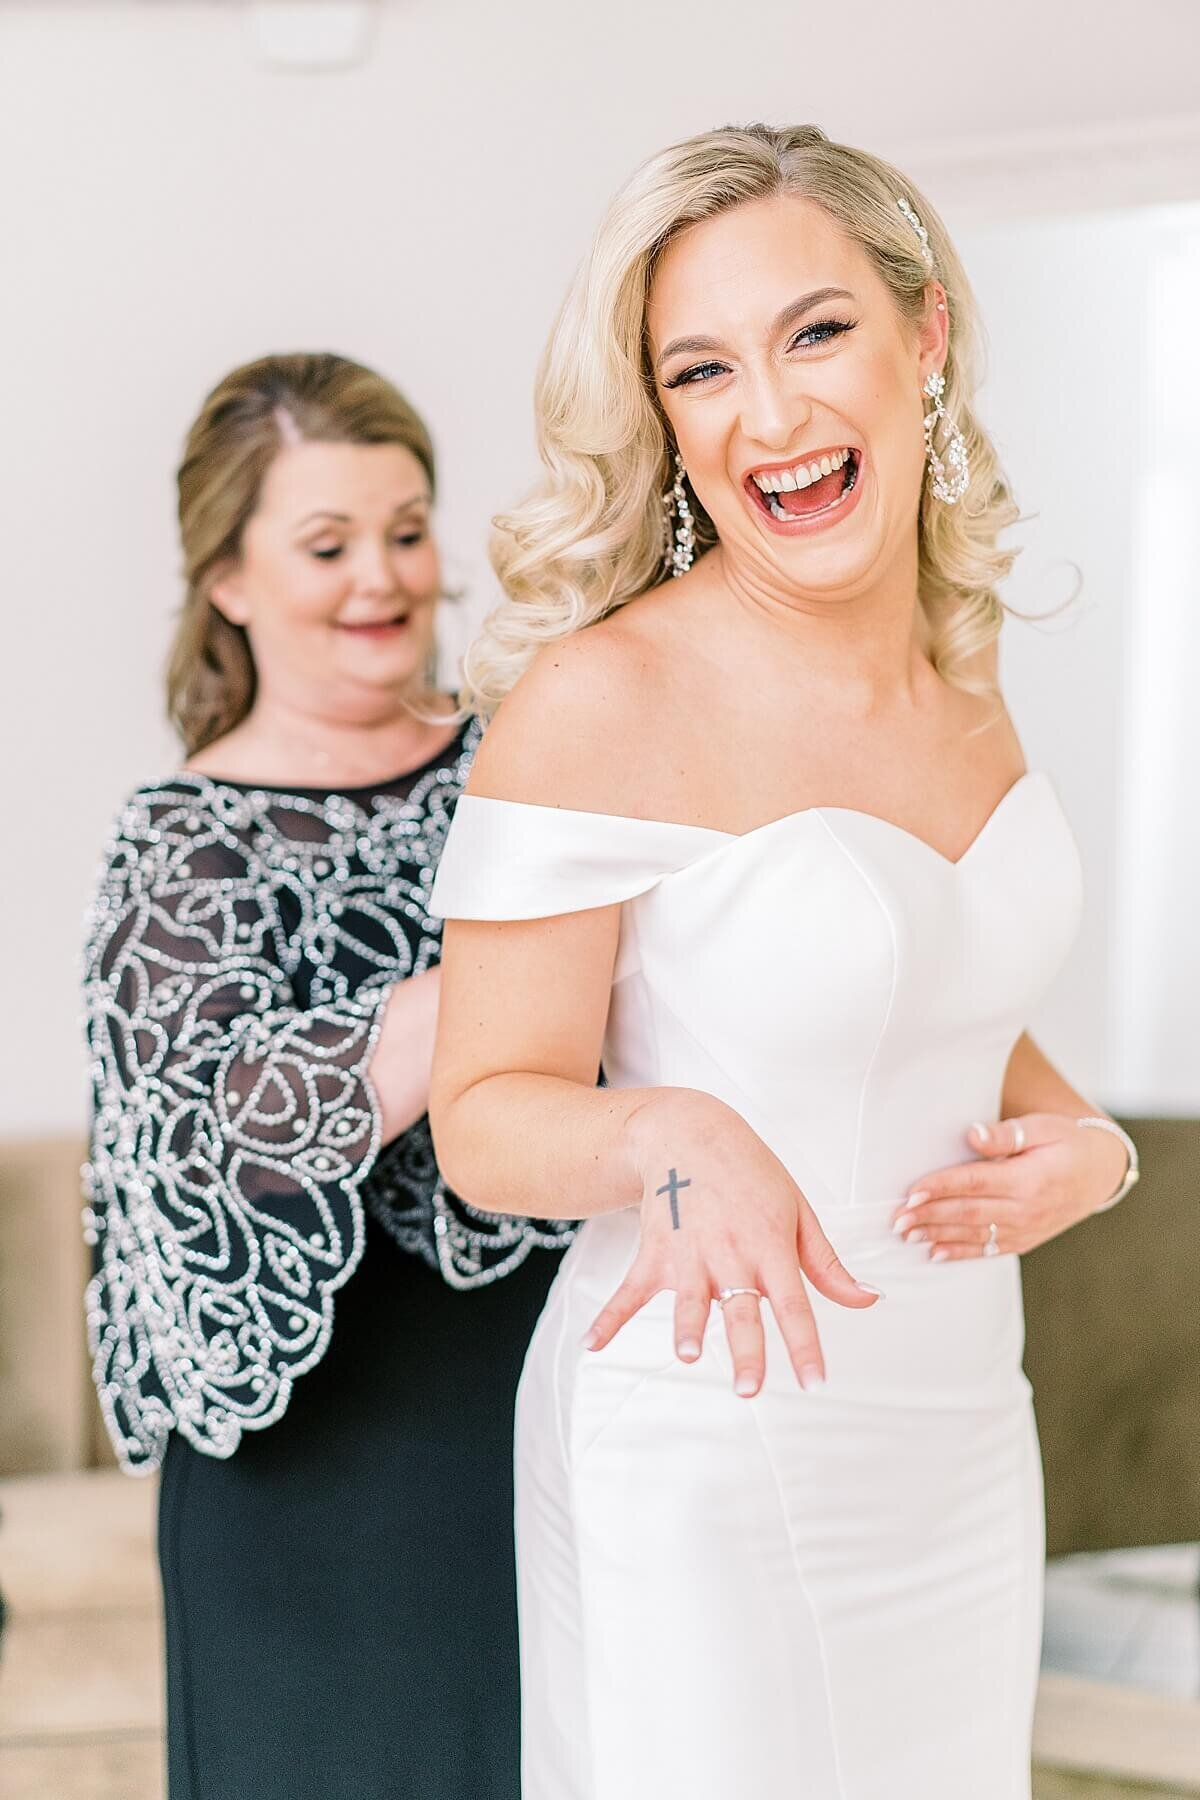 Getting ready at Black and White Themed Wedding at The Annex Wedding Venue photographed by Alicia Yarrish Photography